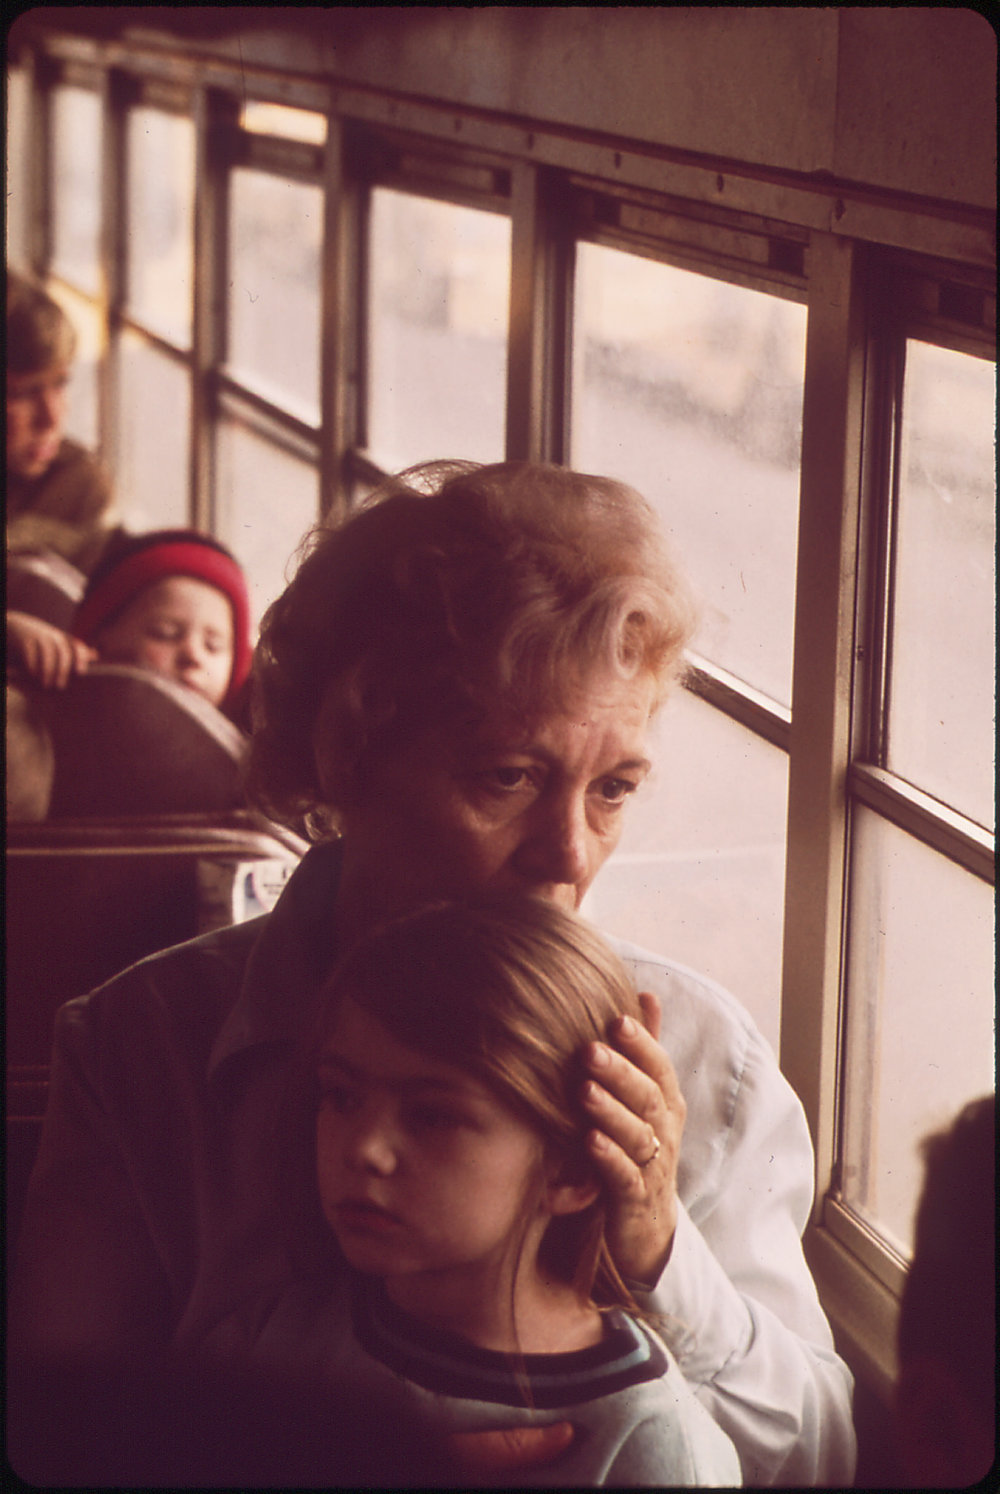 A Worried Mother And Her Child Leave Louisville By Bus When The City Was Evacuated. Evacuation Centers Were Set Up When A Barge Carrying Liquid Chlorine Broke Loose From Its Tug And Threatened To Spill Its Poisonous Contents. The Barge Carried Enough Liquid Chlorine To Devastate Much Of The City Of Louisville, March 1972.